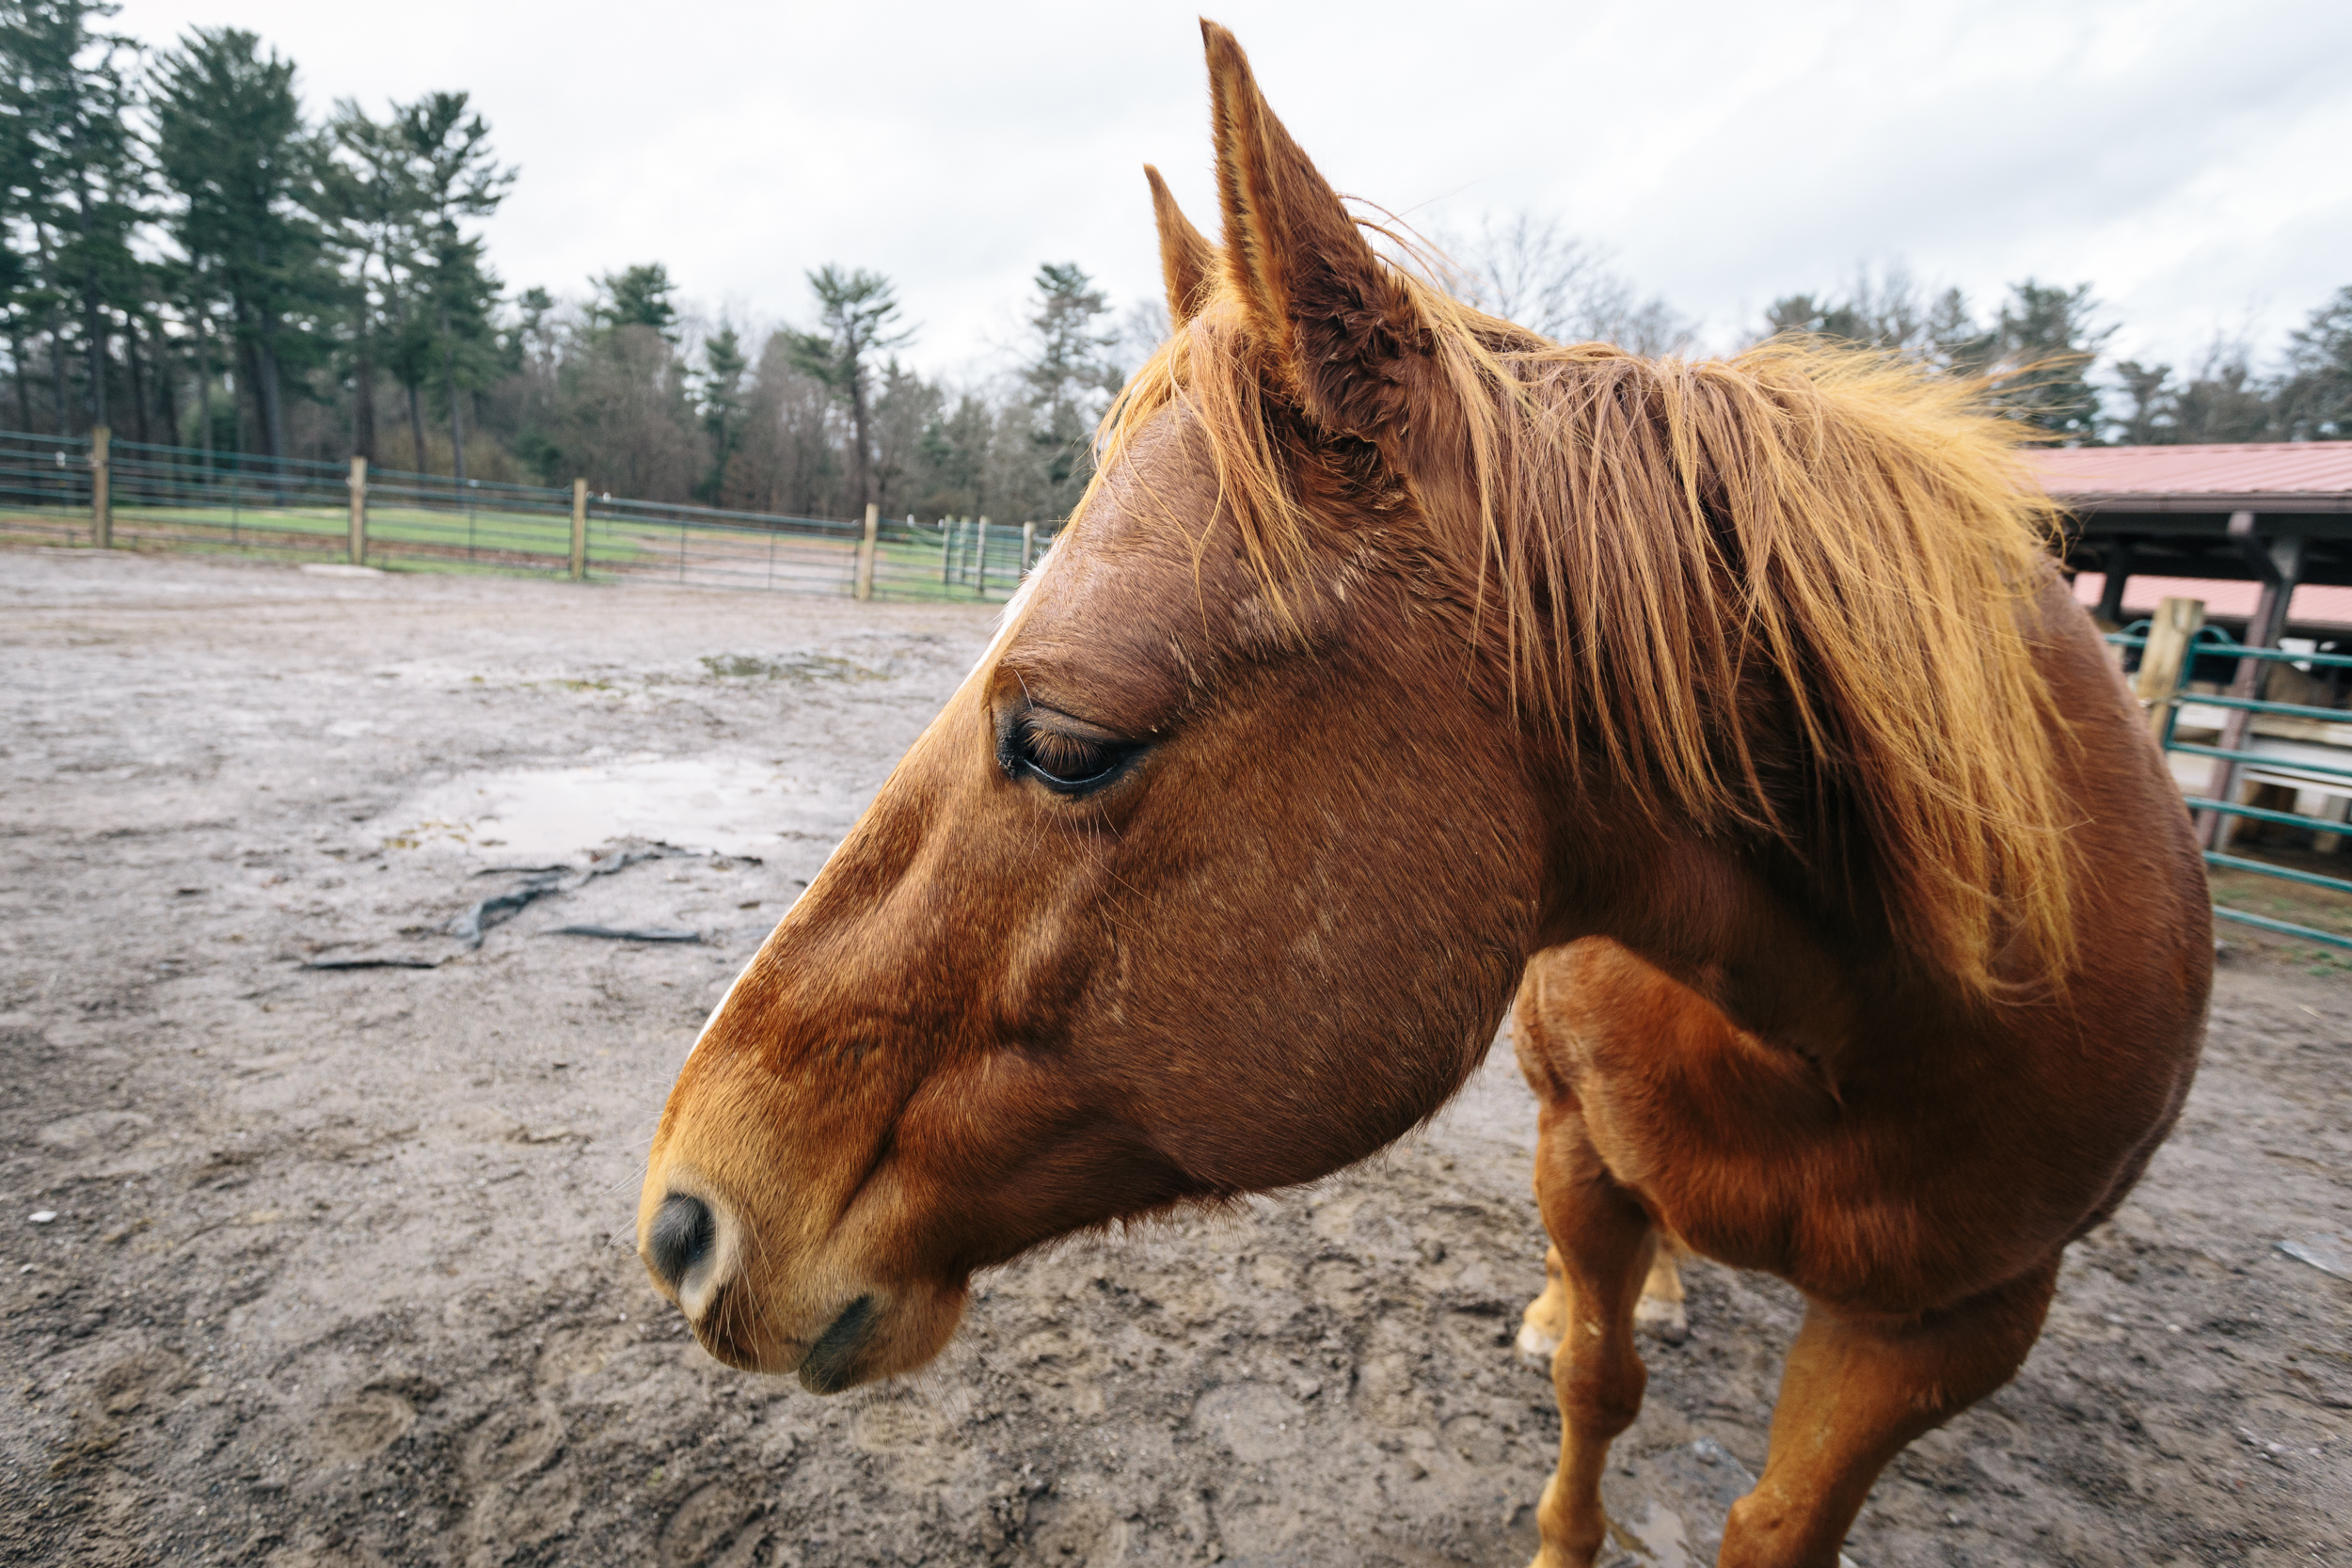 Ultra-wide close-up of a horse.